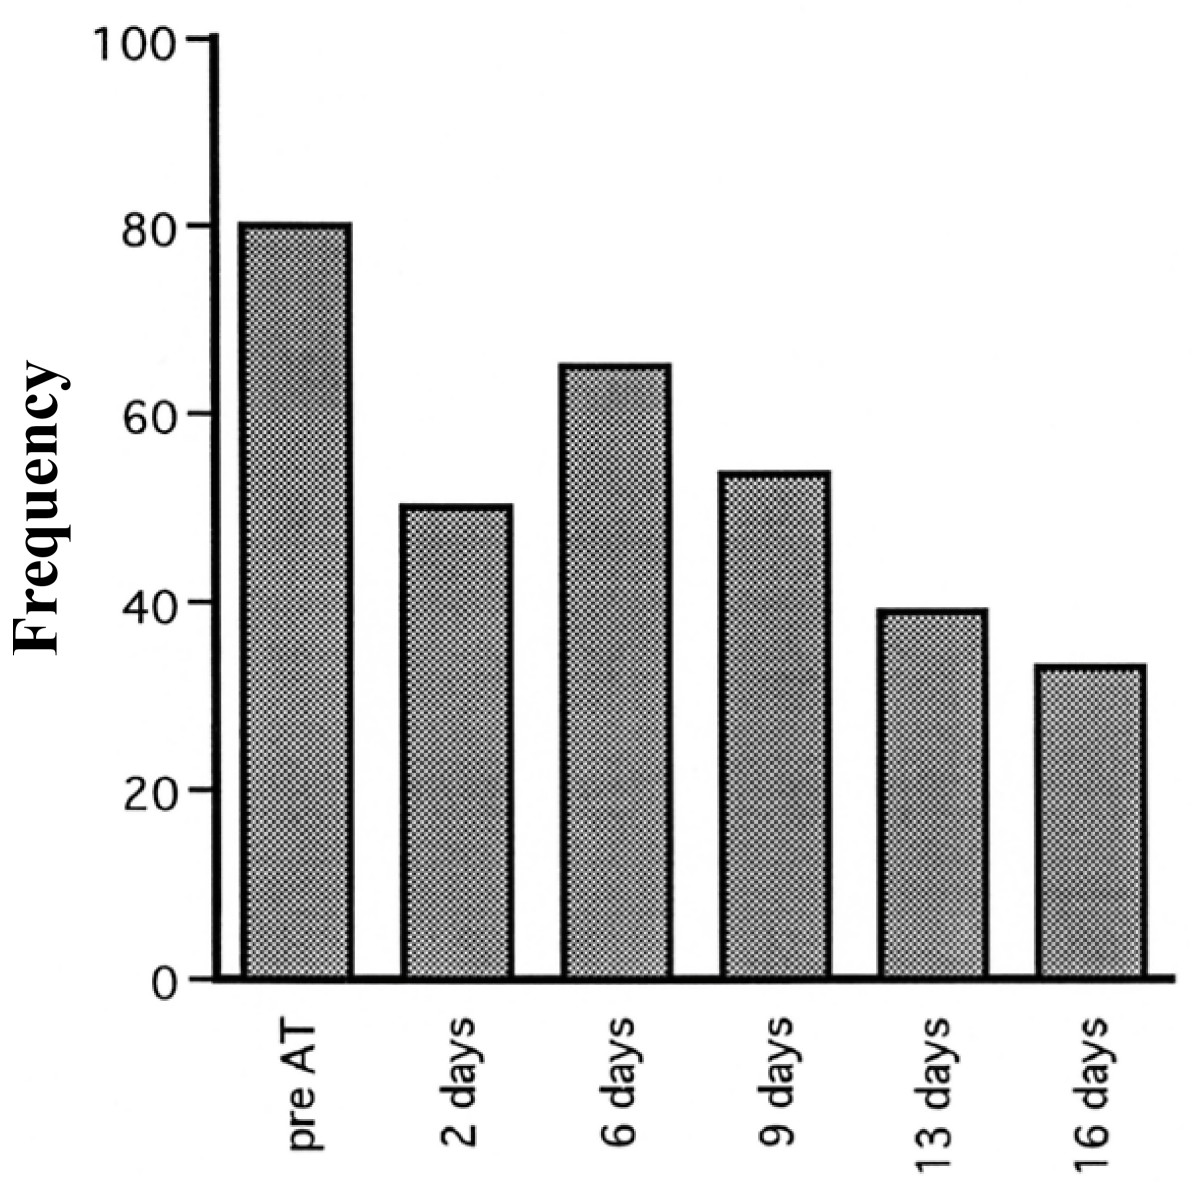 https://static-content.springer.com/image/art%3A10.1186%2F1751-0759-1-18/MediaObjects/13030_2007_Article_18_Fig3_HTML.jpg